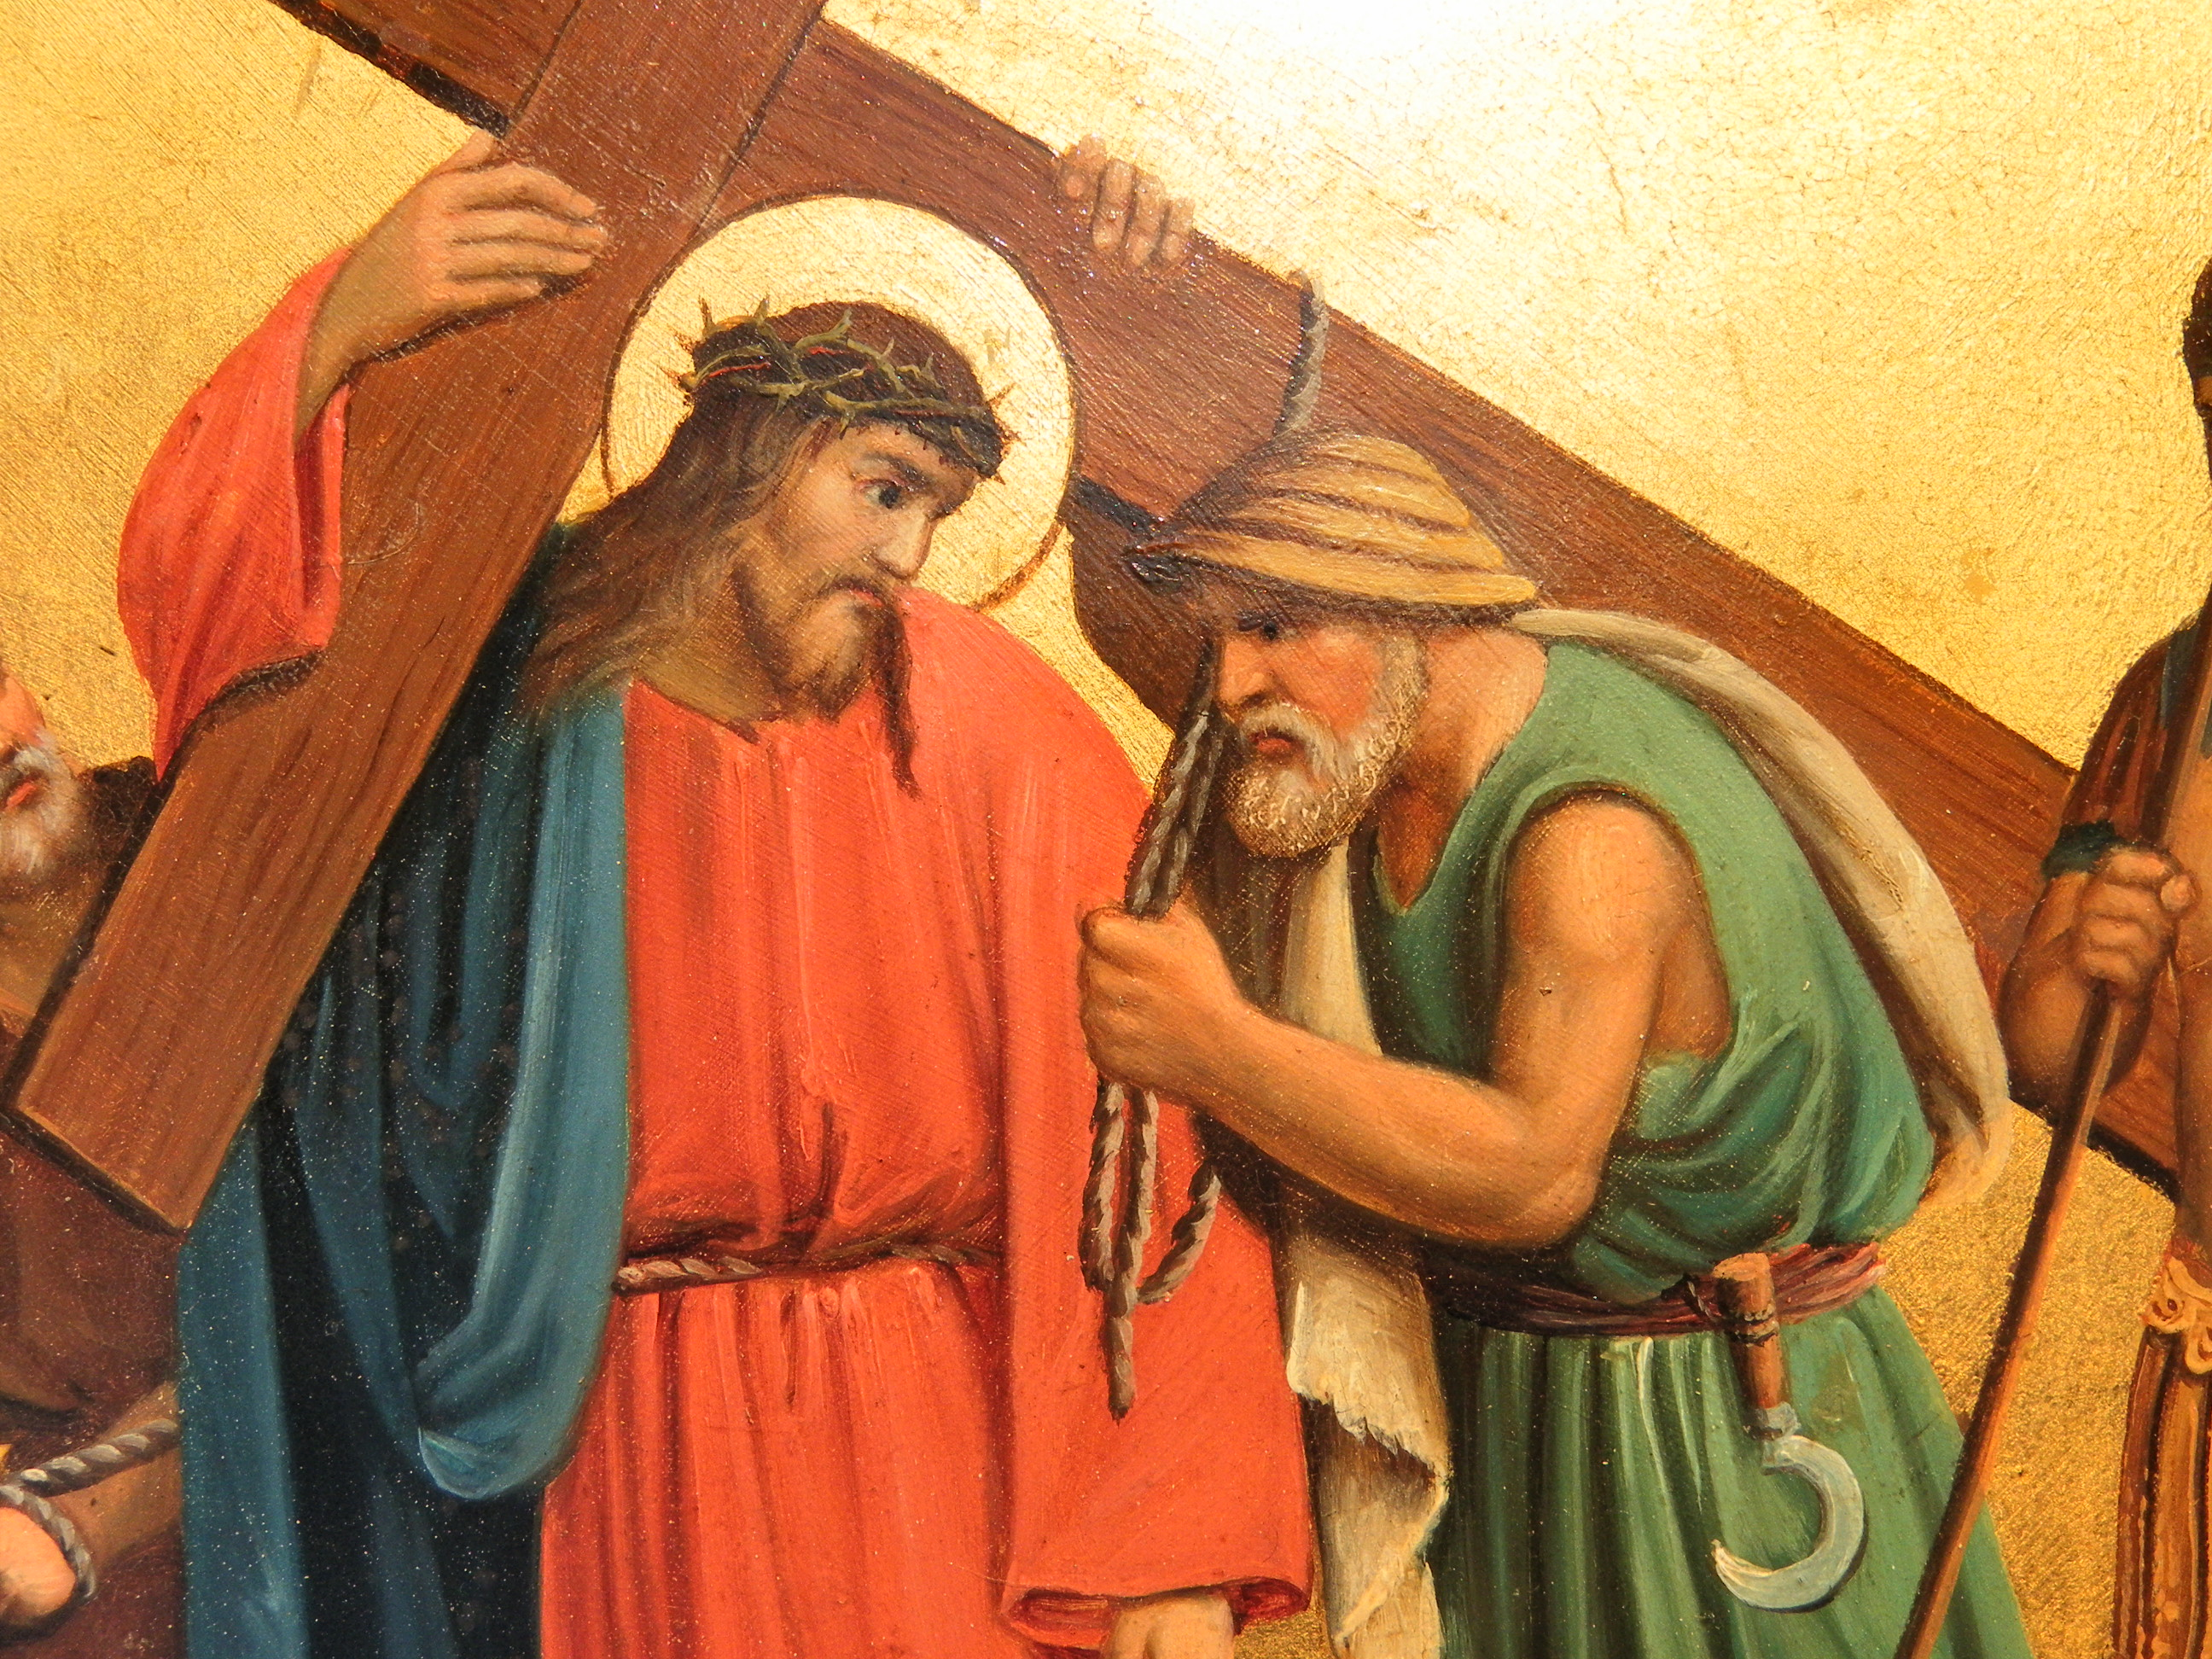 the fifth station simon of cyrene helps jesus to carry the cross